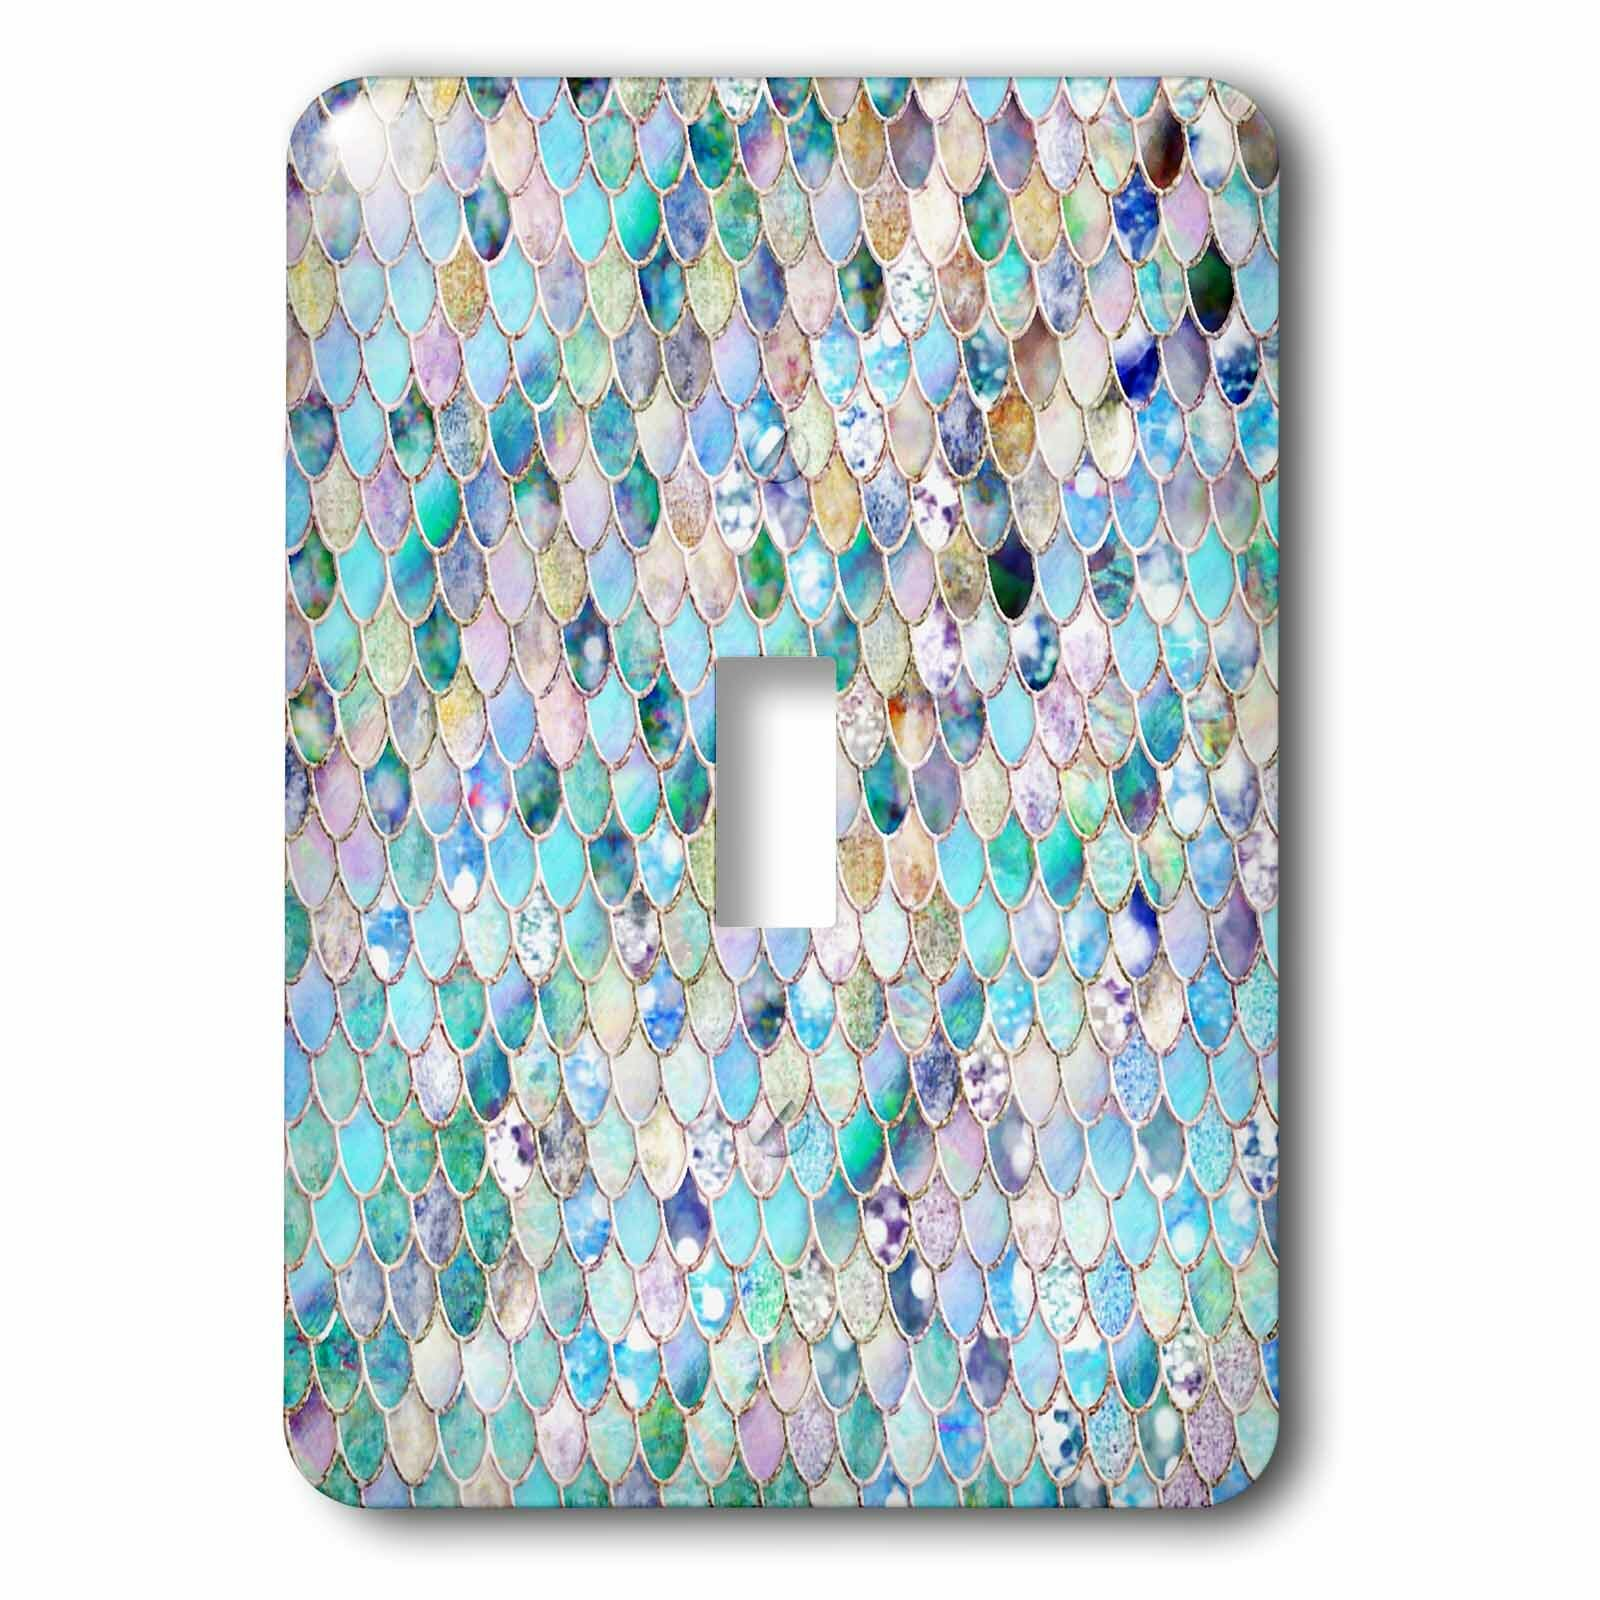 3drose Glitter Mermaid Scales 1 Gang Toggle Light Switch Wall Plate Wayfair